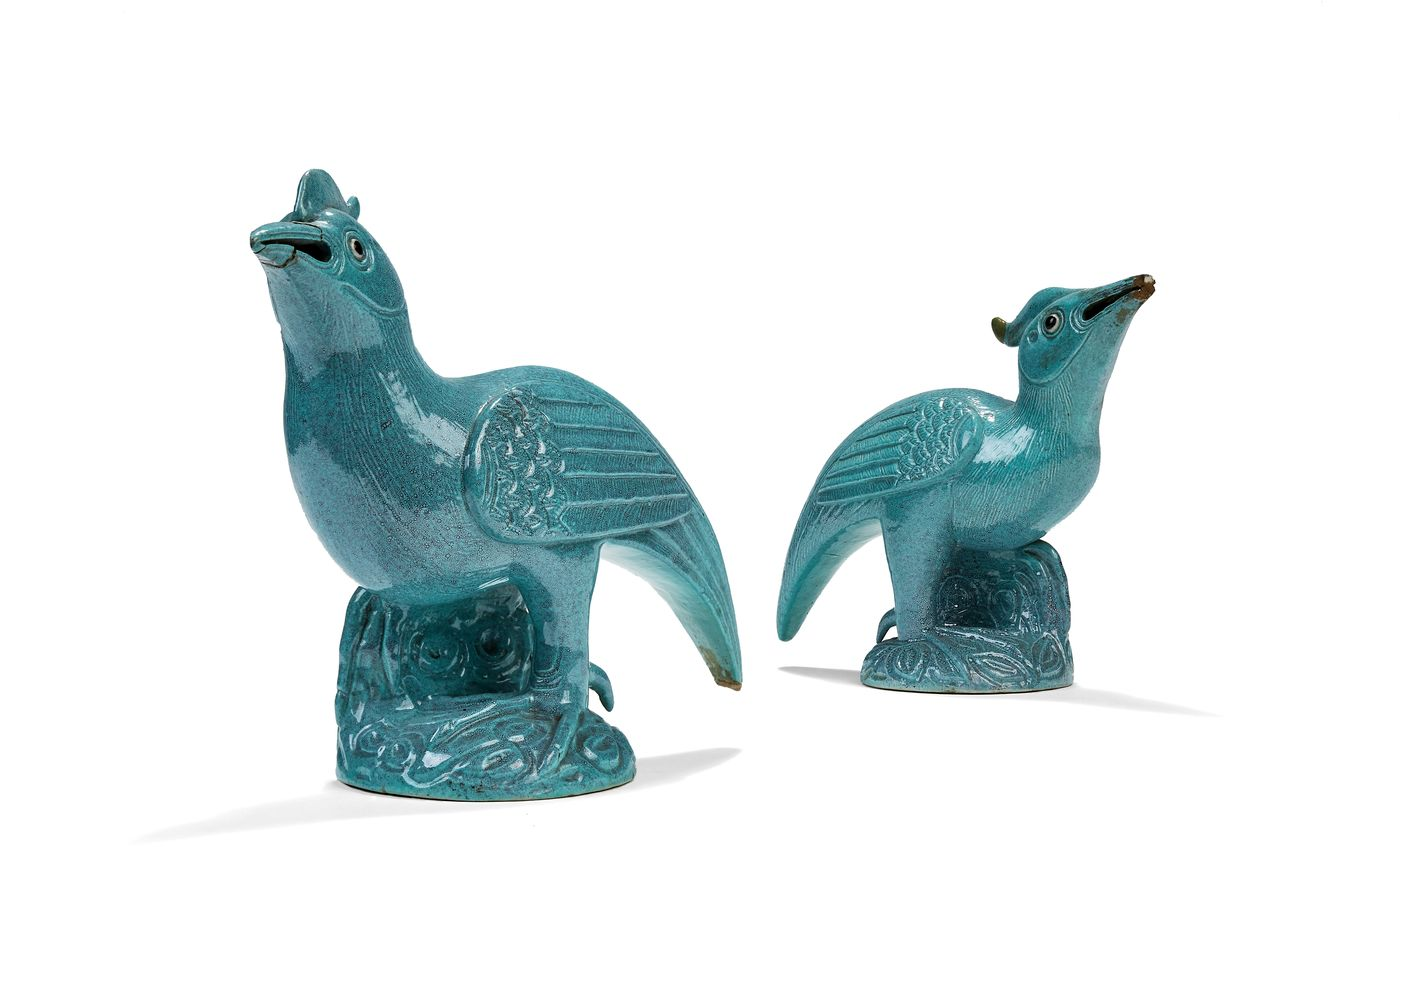 A pair of Chinese 'robins egg' glazed models of mythical birds, Qing Dynasty, 19th century